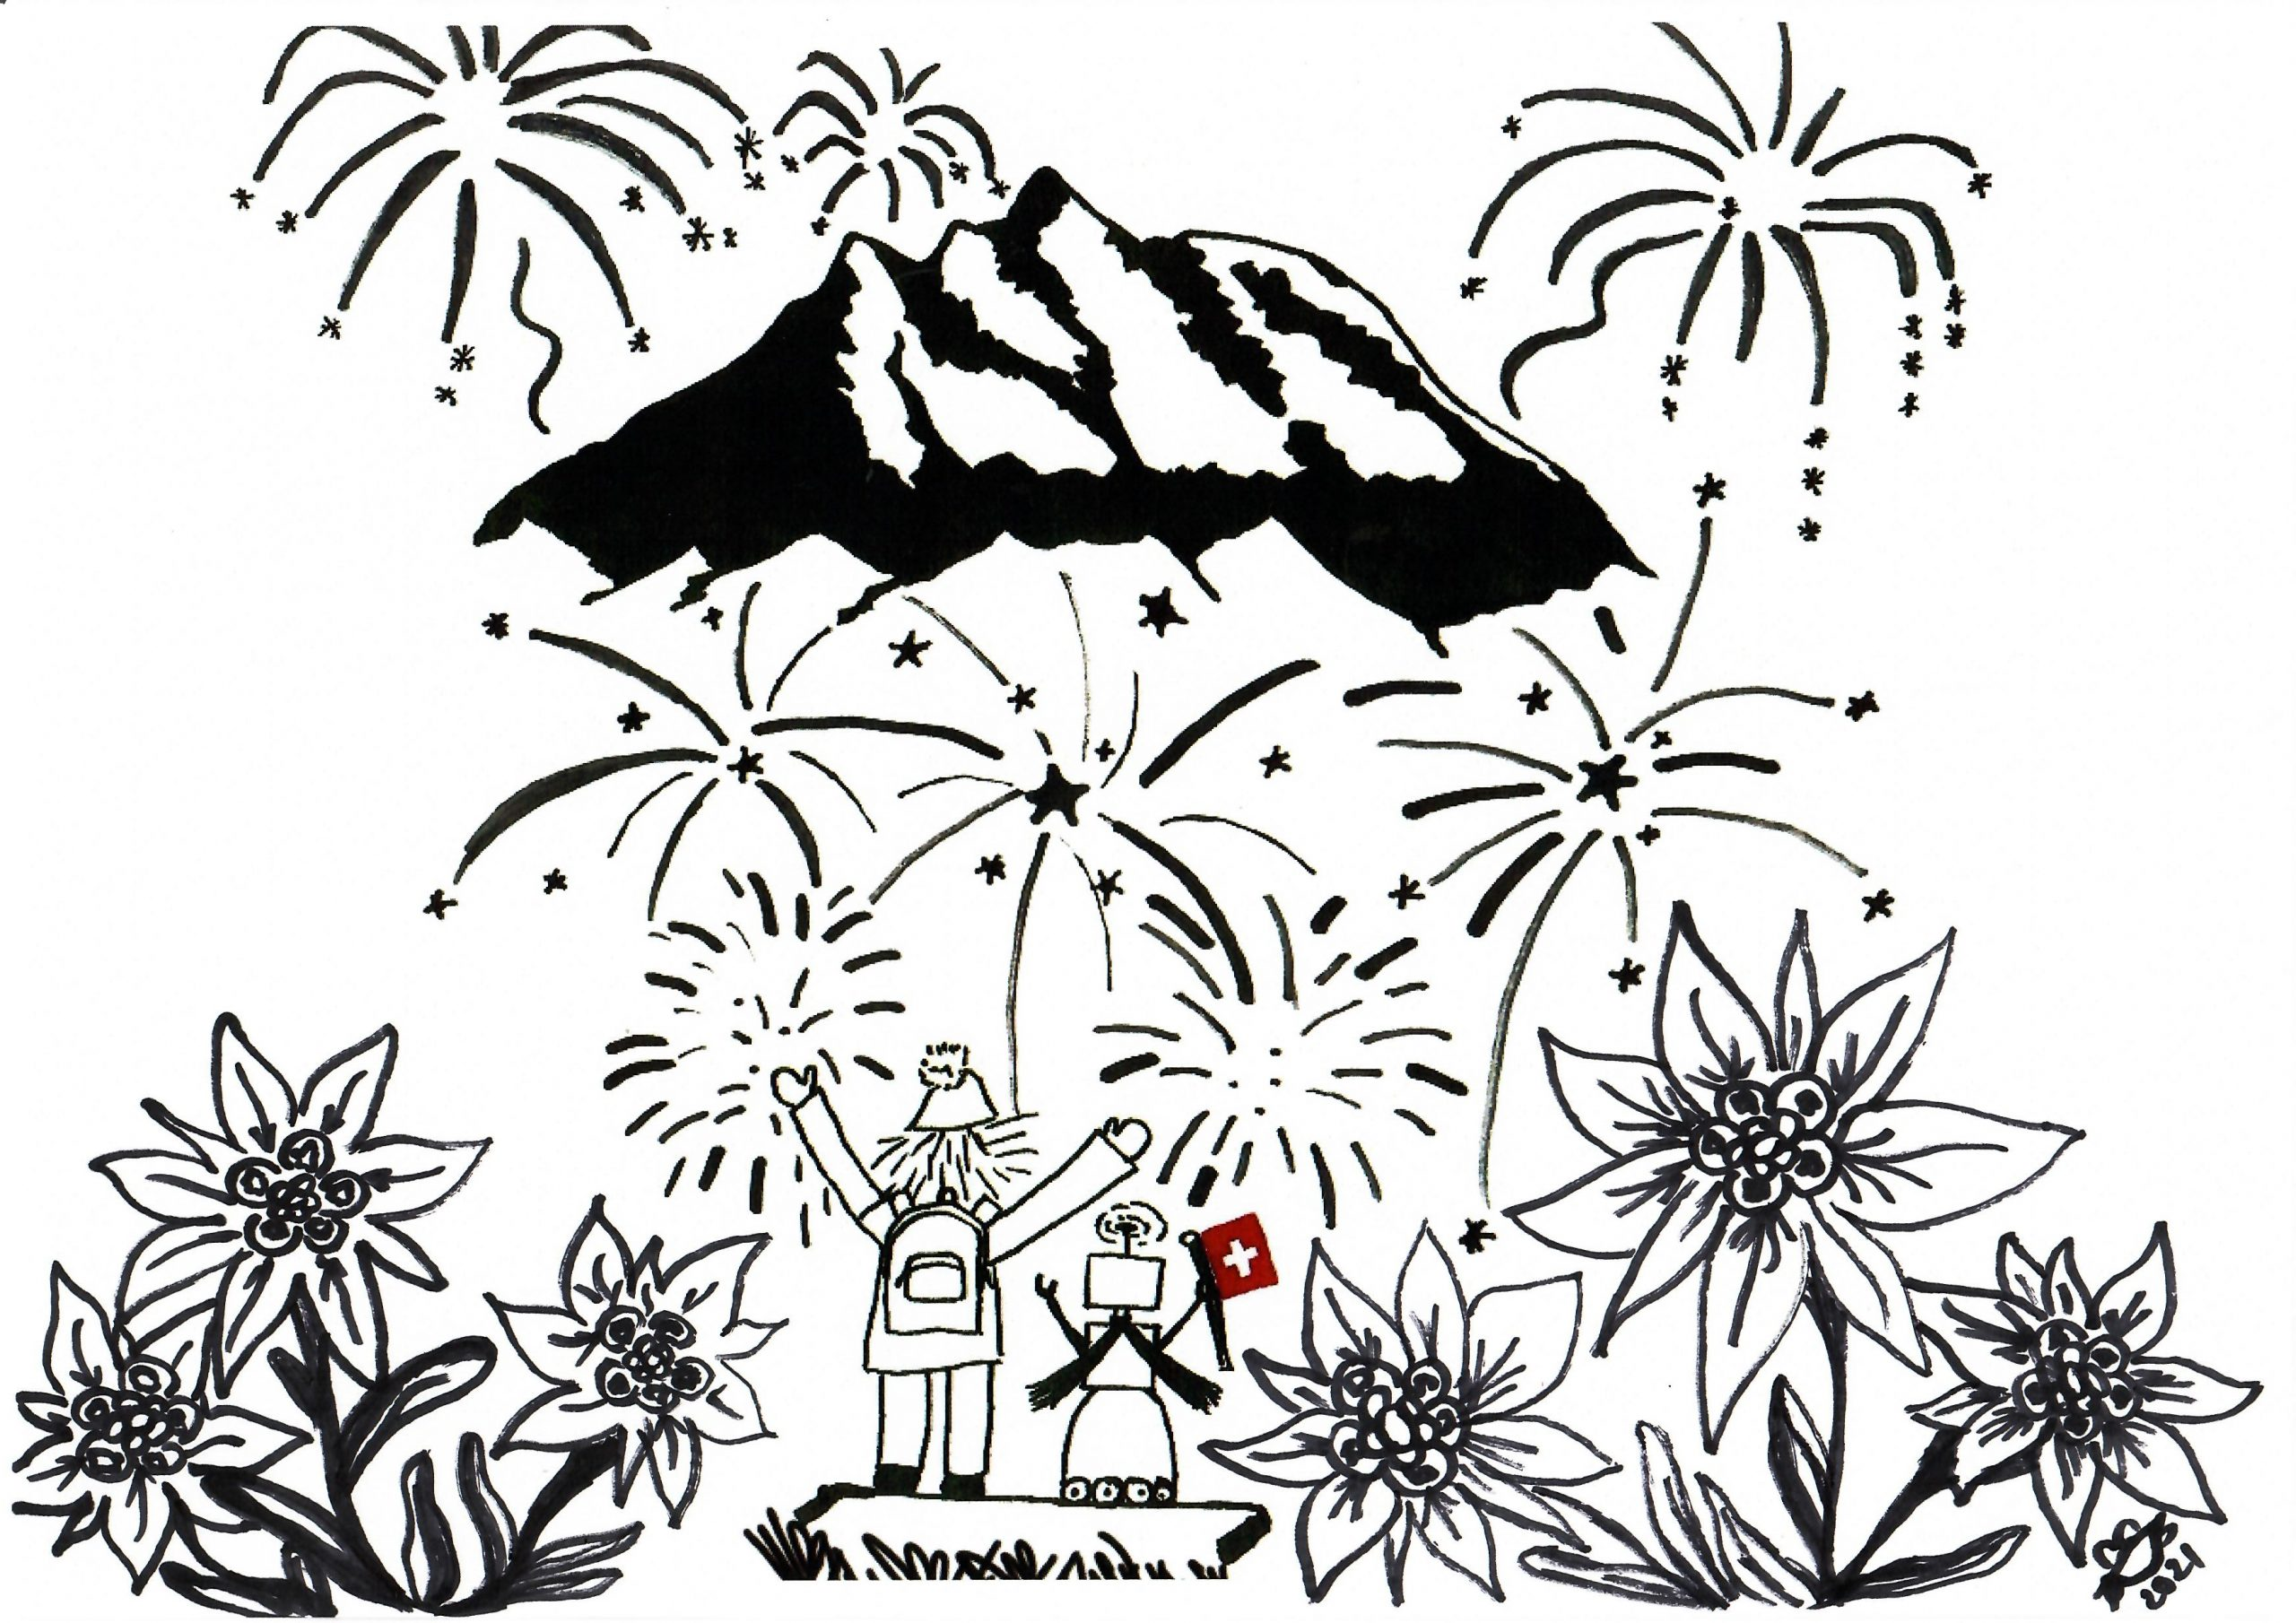 It's the Swiss National Holiday today. Have fun everyone while staying safe!